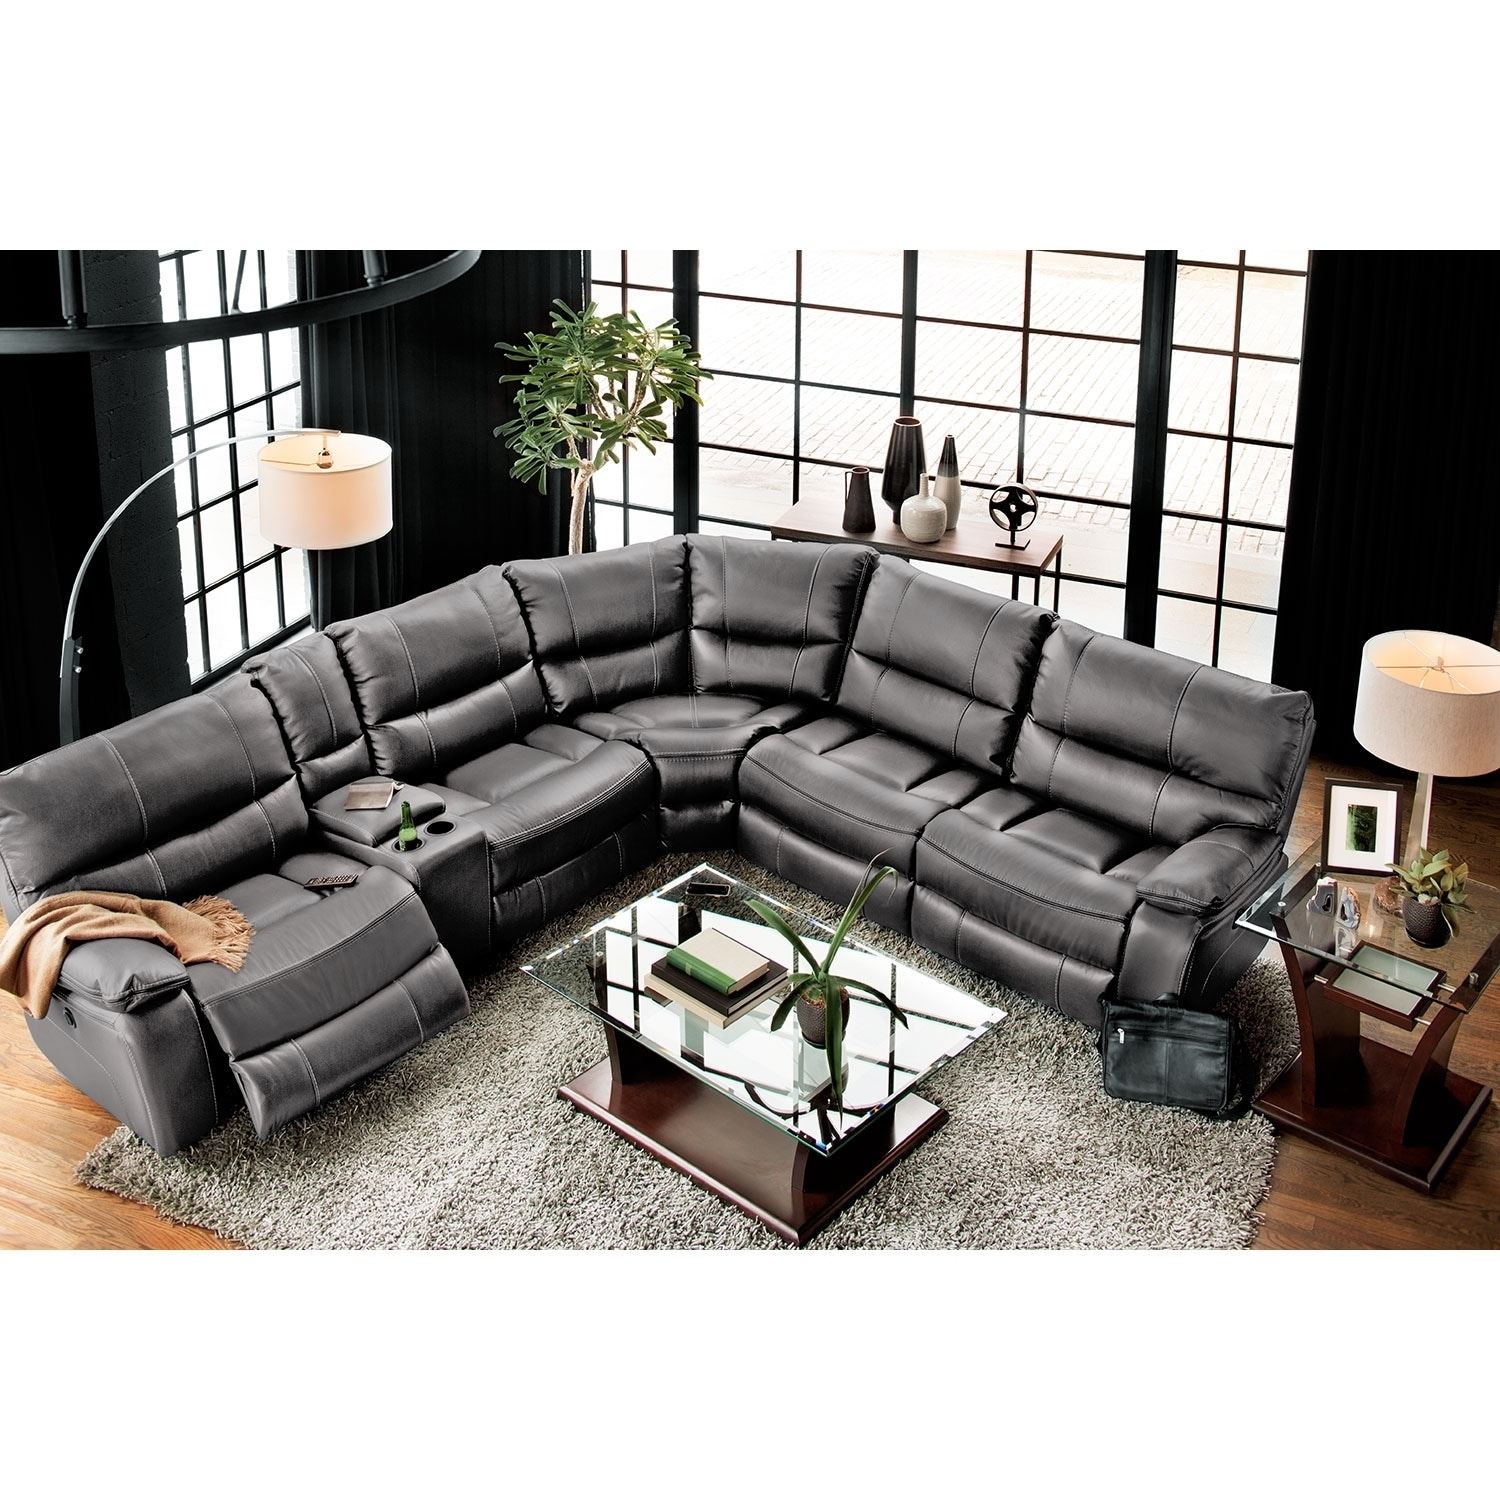 Orlando 6-Piece Power Reclining Sectional With 1 Stationary Chair within Kristen Silver Grey 6 Piece Power Reclining Sectionals (Image 21 of 30)